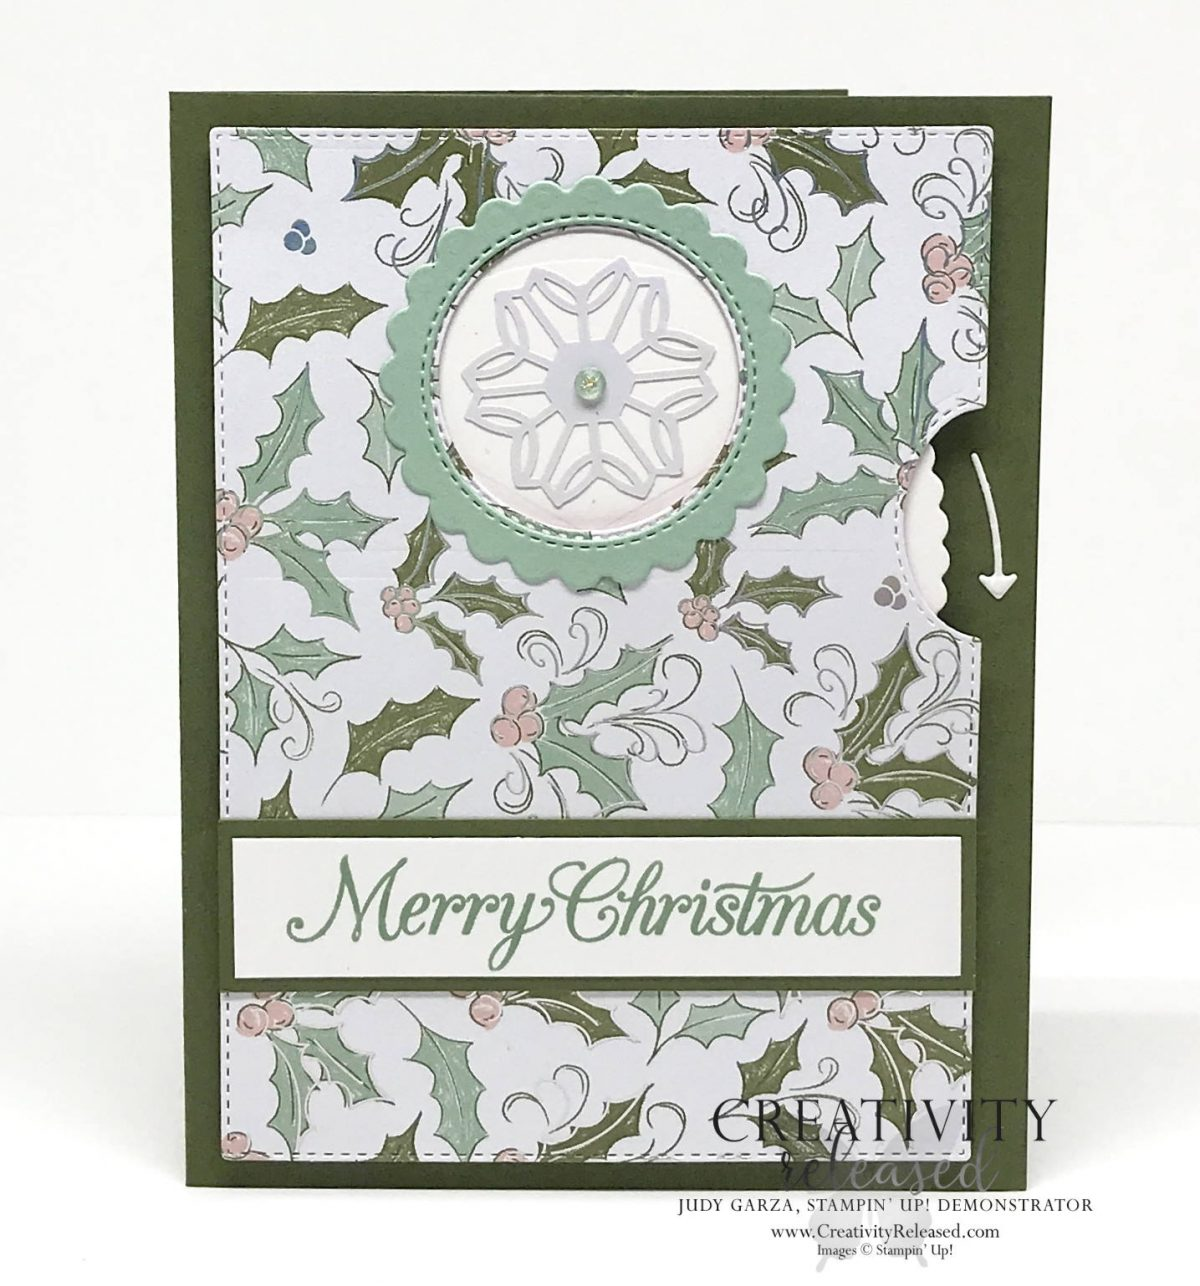 Position 1 of a Christmas card using the Whimsy & Wonder stamp set and the Give It A Whirl dies by Stampin' Up!®